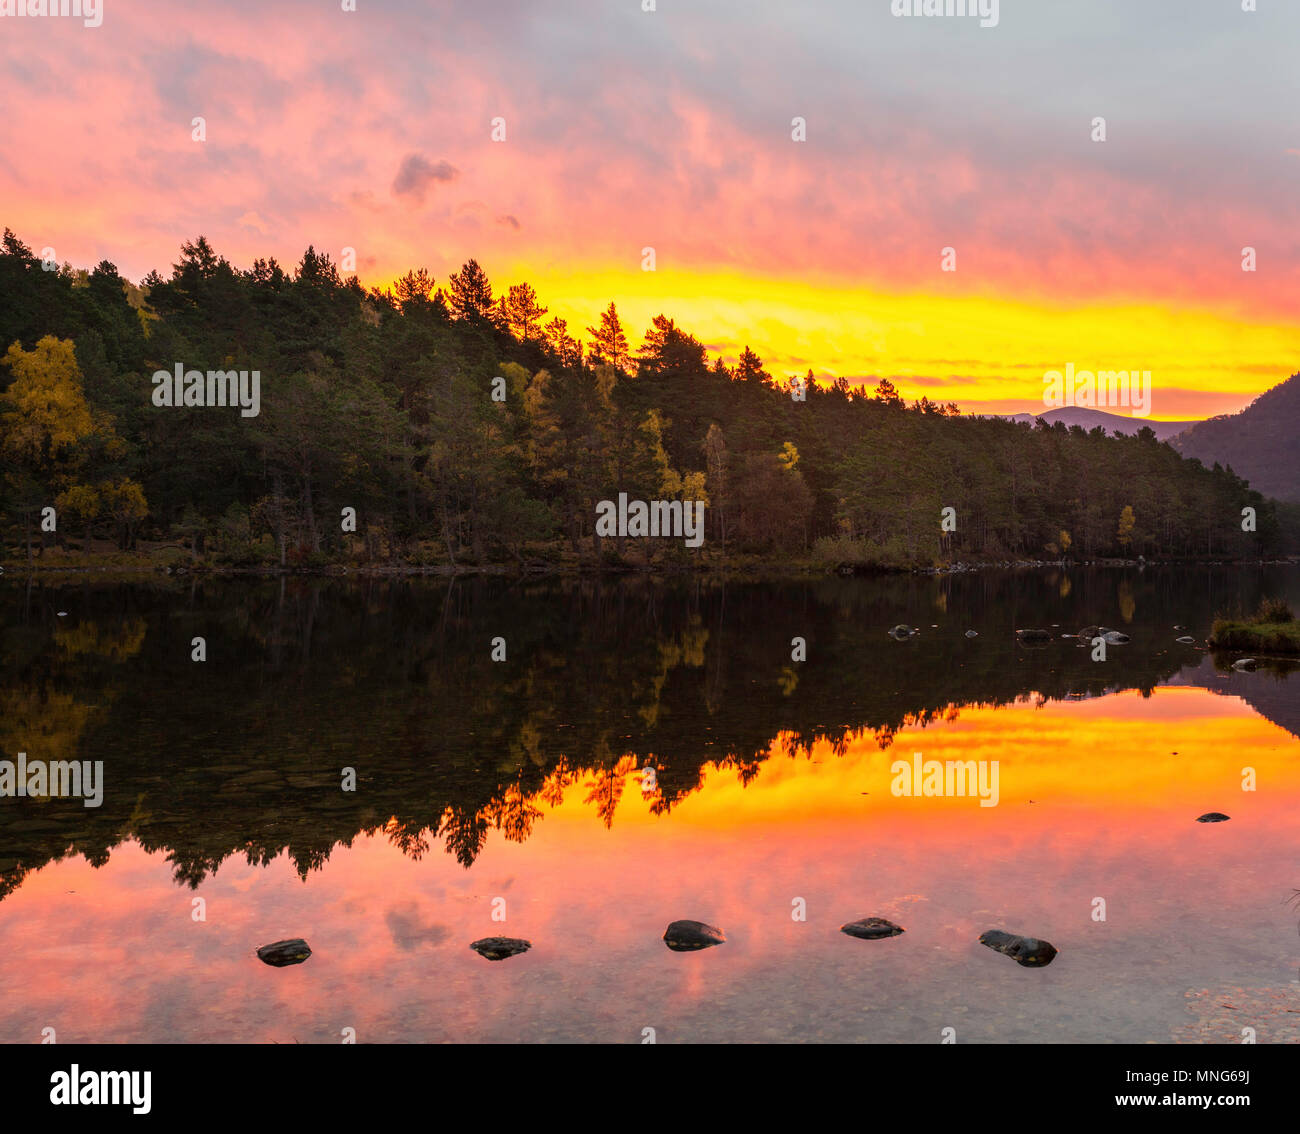 Sunrises and sunsets don't happen like this every day so when you are there for one give thanks - Stock Image